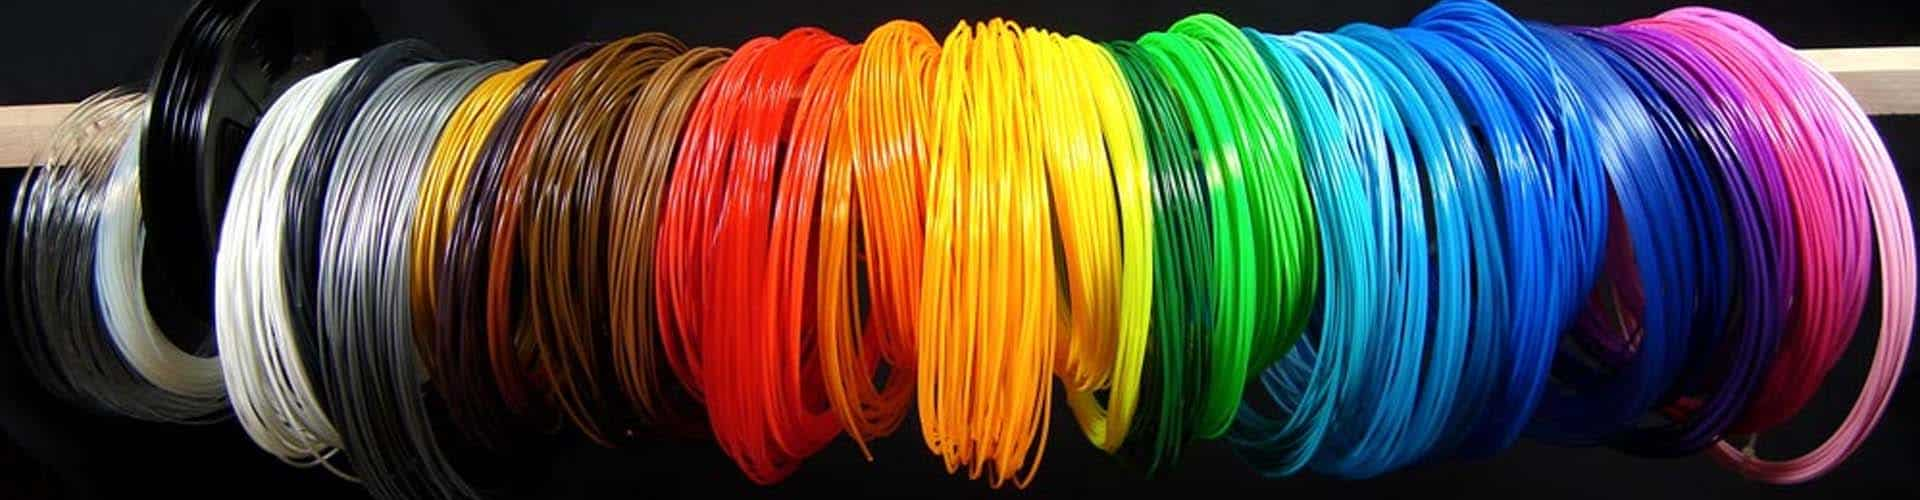 How To Recycle 3D Printing Filament